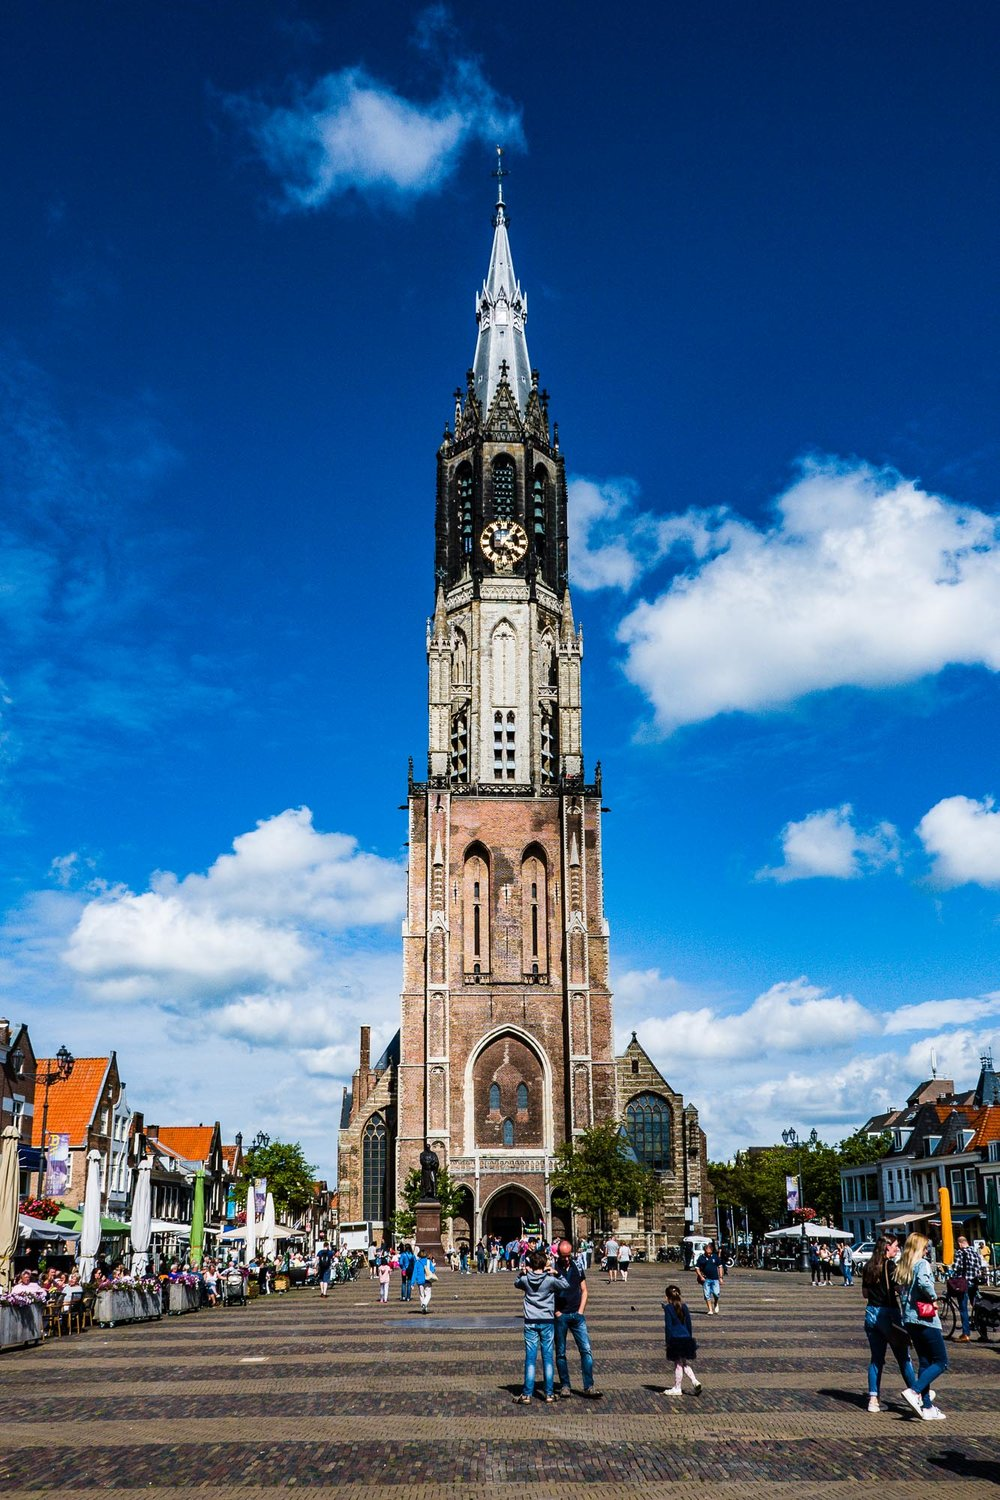 Delft Nieuwe Kerk - The New Church